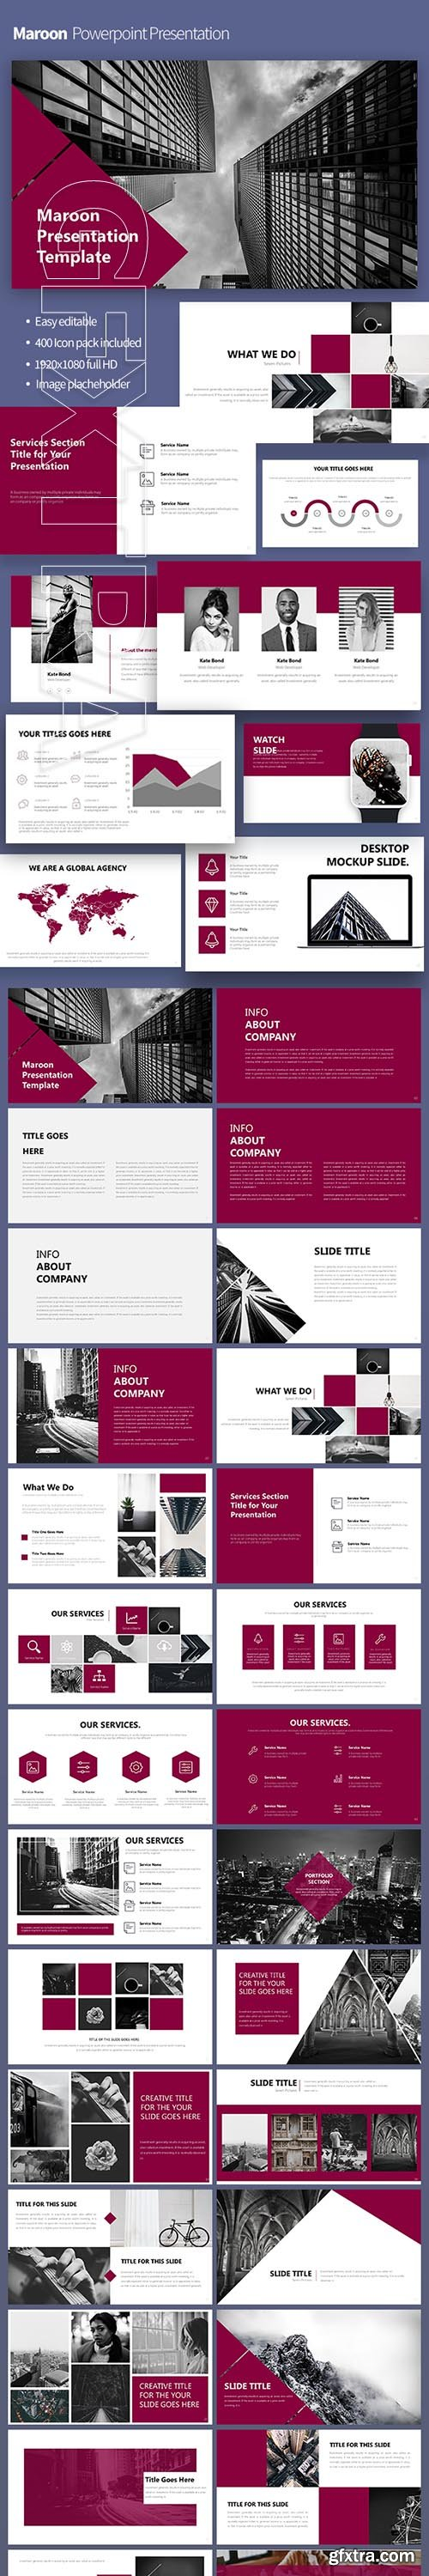 GraphicRiver - Maroon Powerpoint Template 22305396